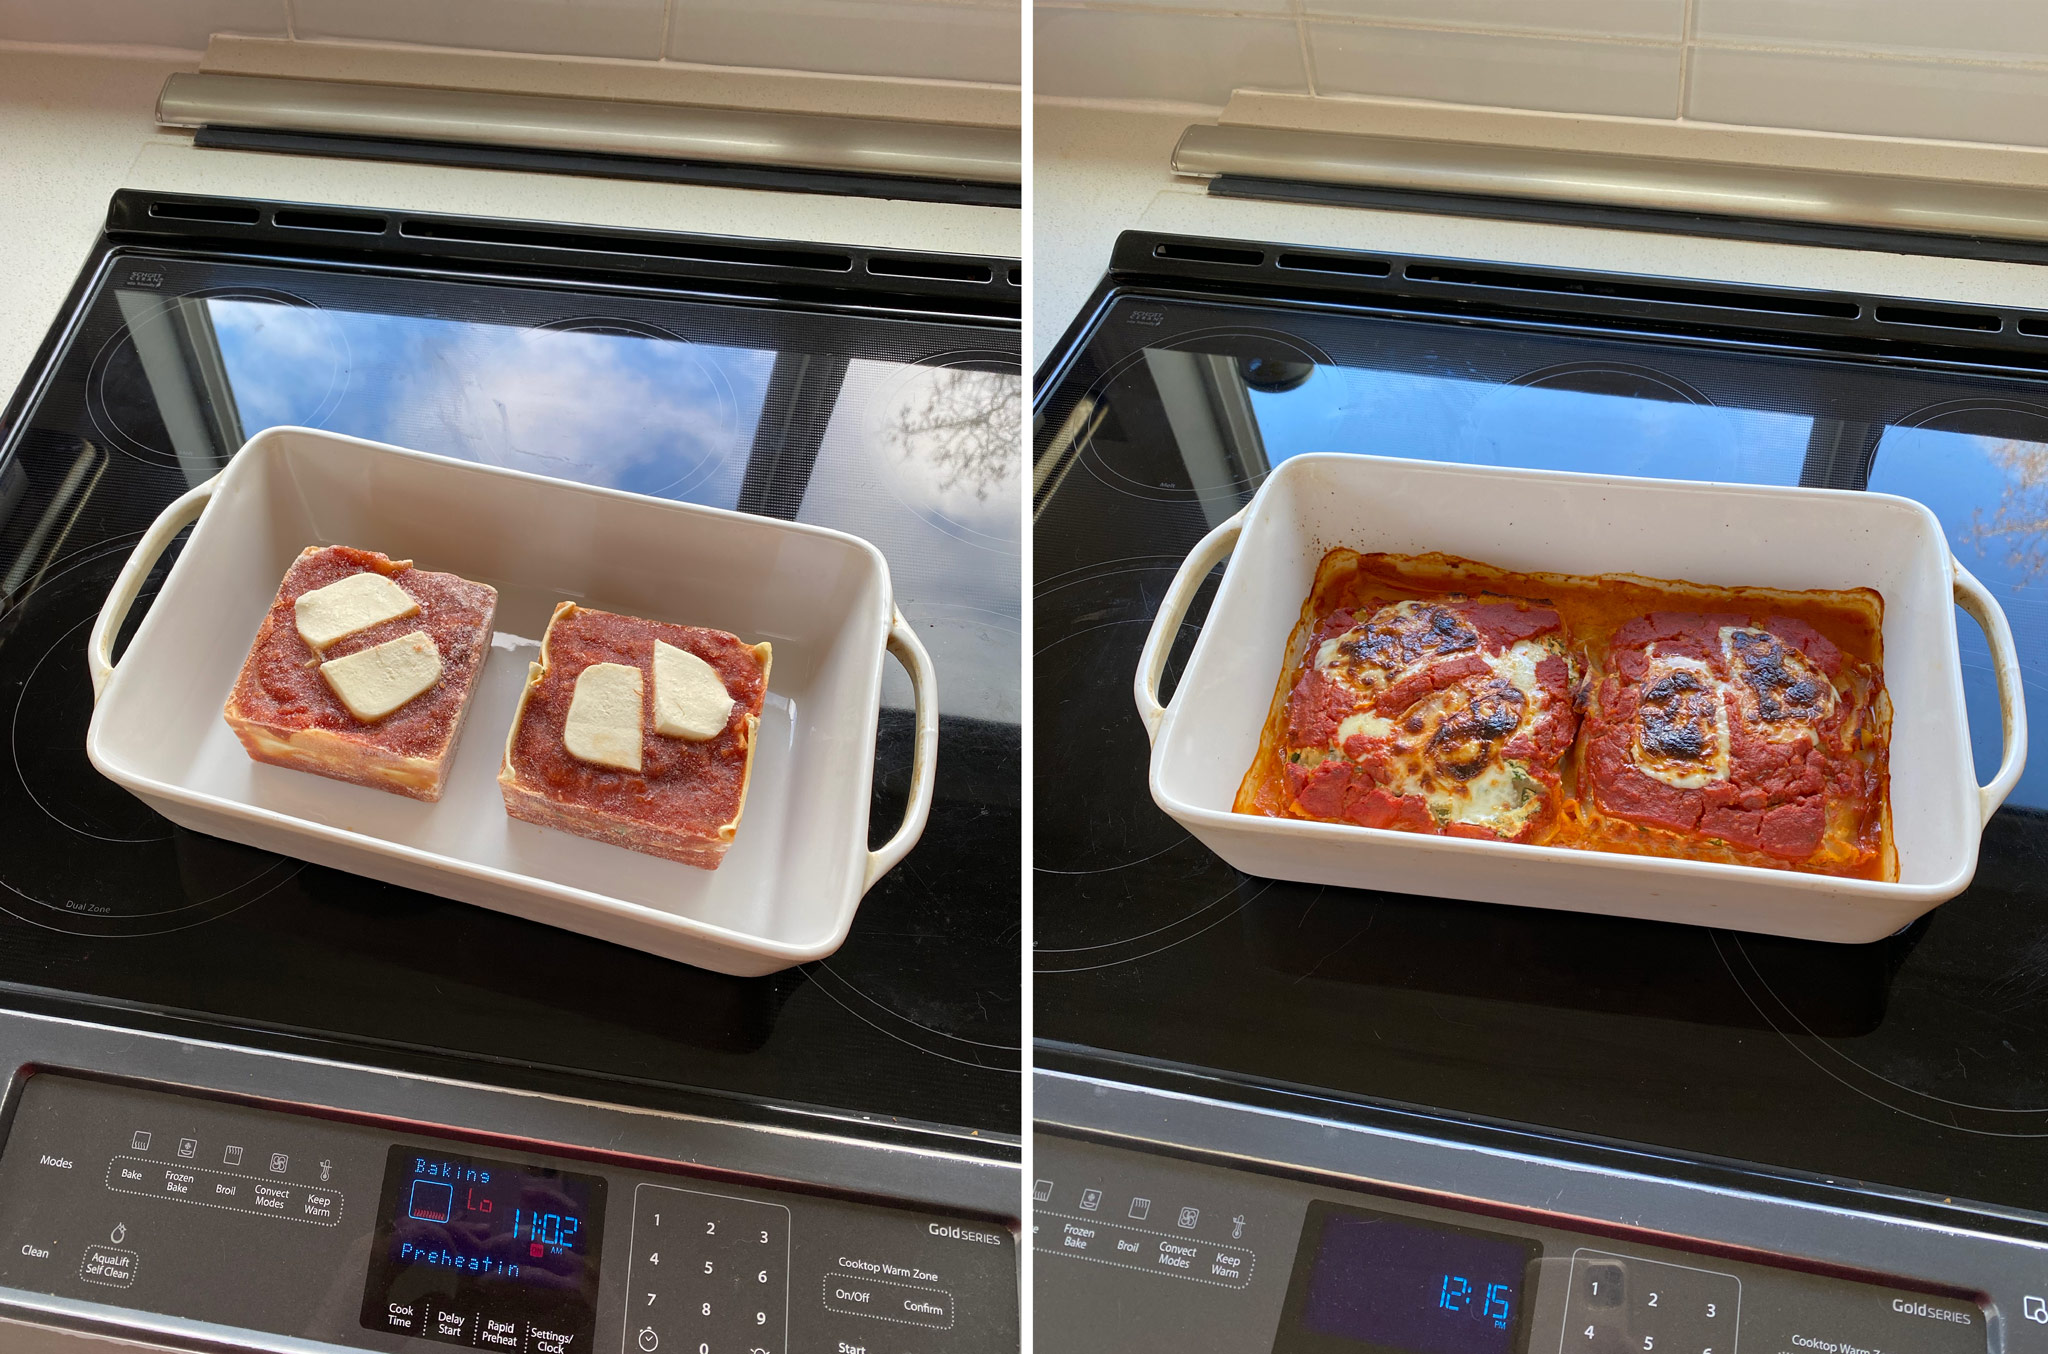 lasagna reheated in the oven before and after.